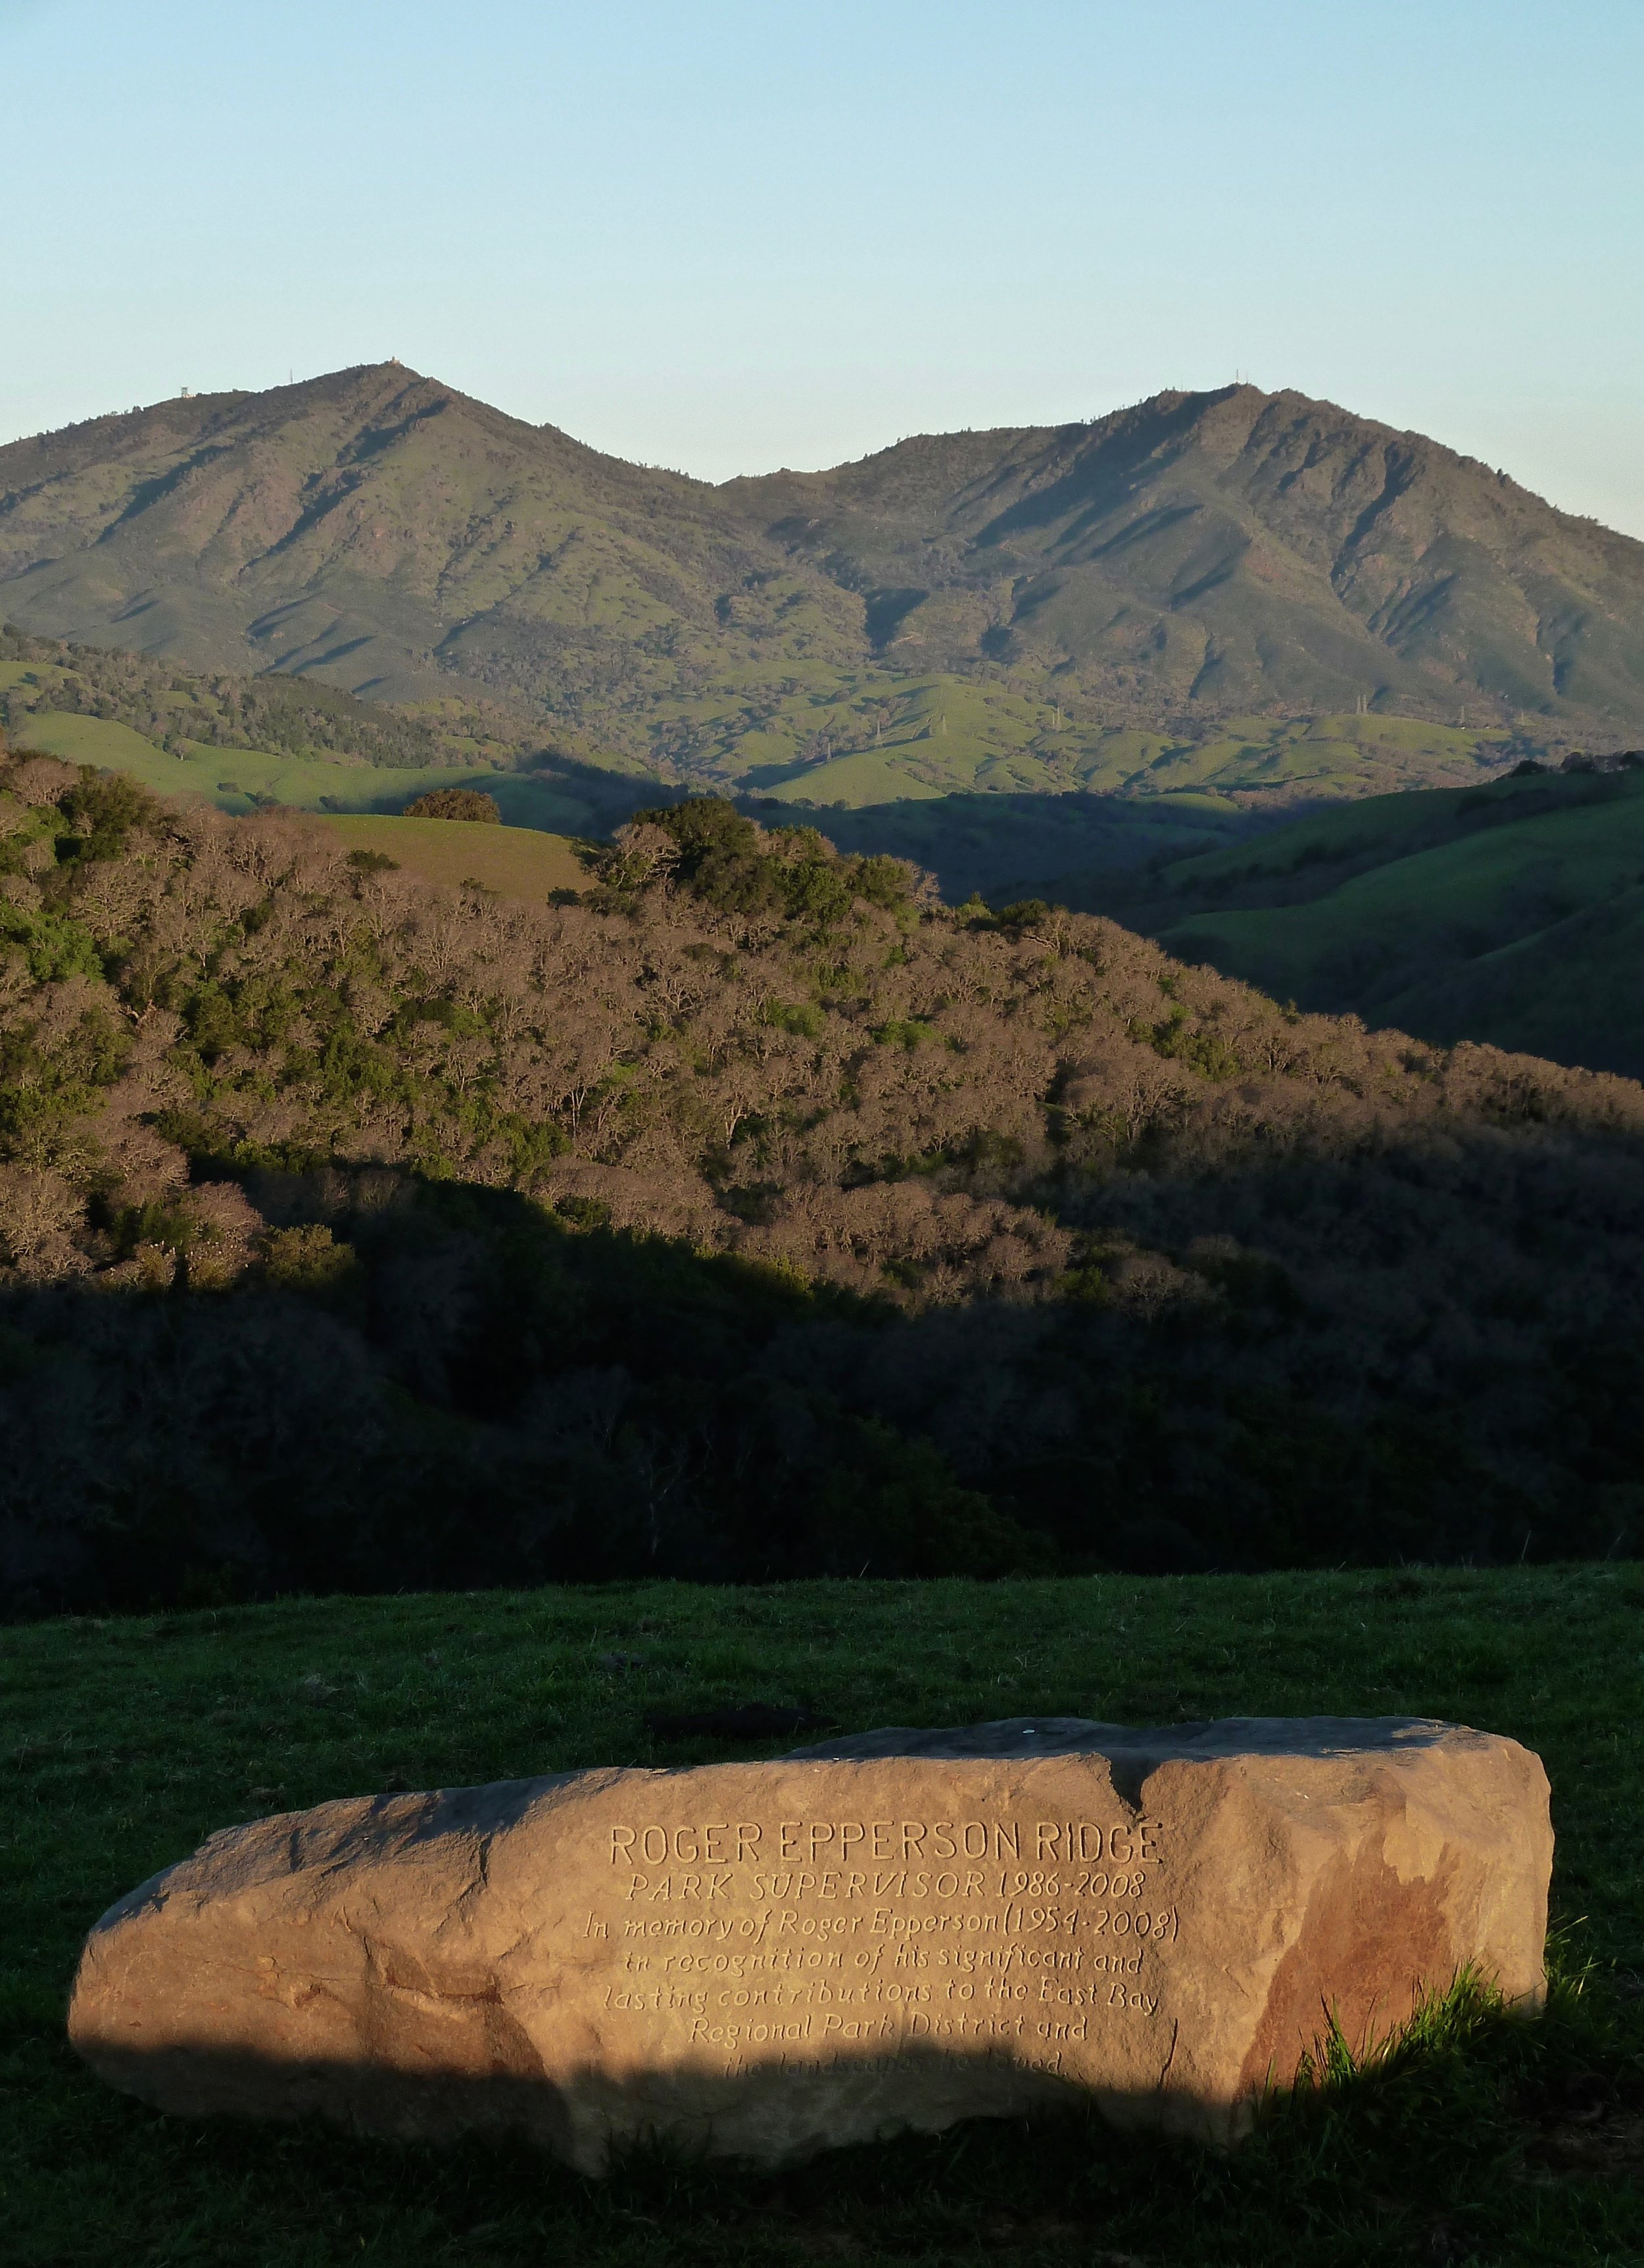 The view from Roger Epperson Ridge, Morgan Territory Regional Preserve.